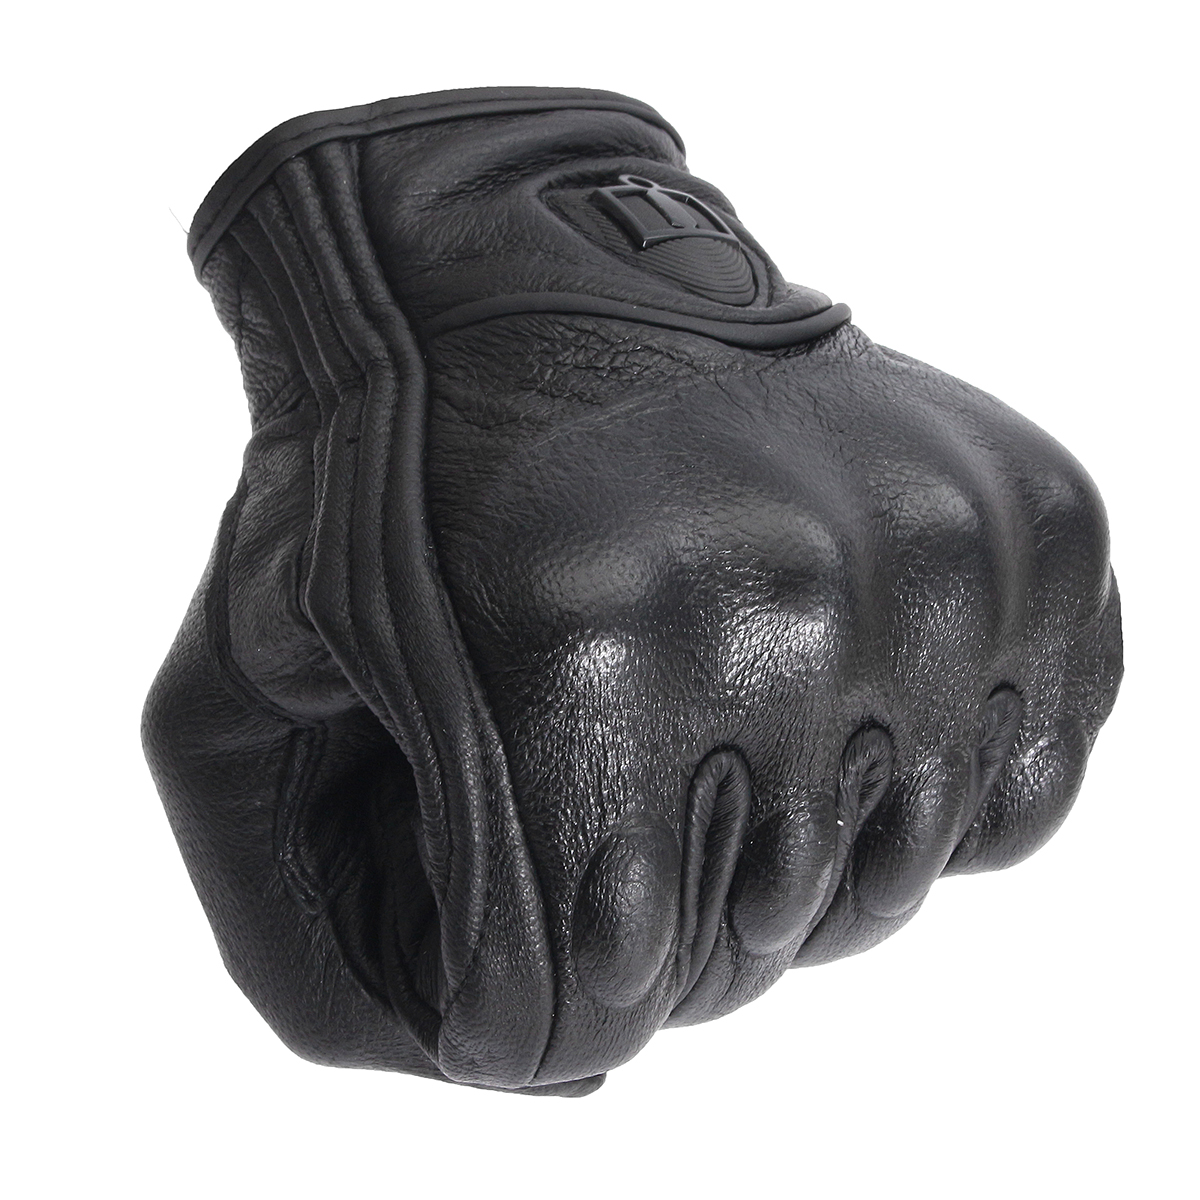 Outdoor Leather Gloves Motorcycle Bicycle Protective Armor